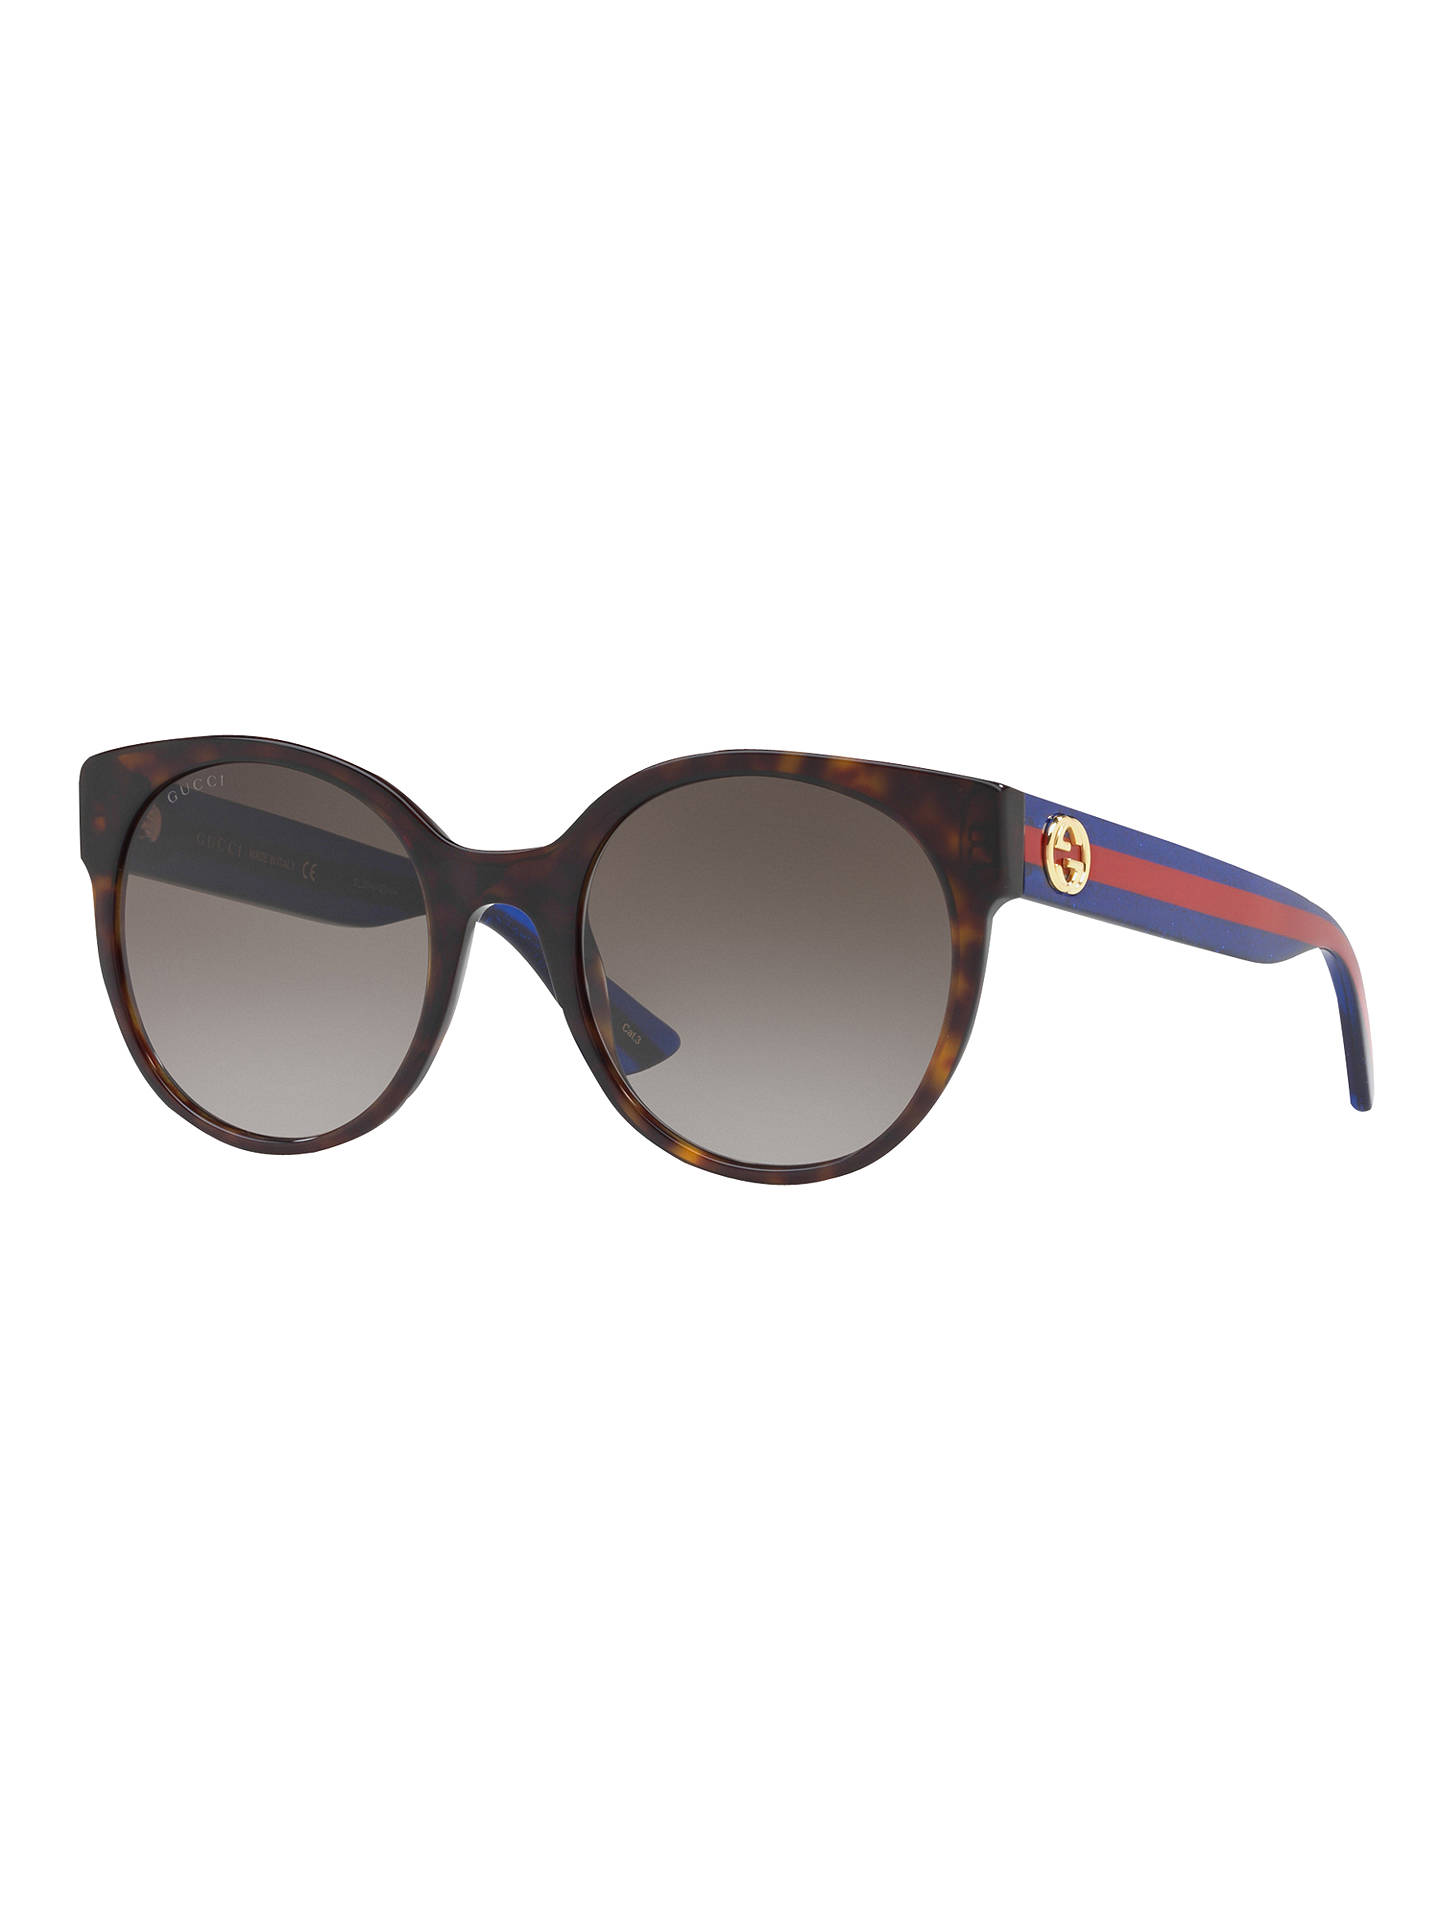 ada6167a61 Gucci GG0035S Women s Oval Sunglasses at John Lewis   Partners